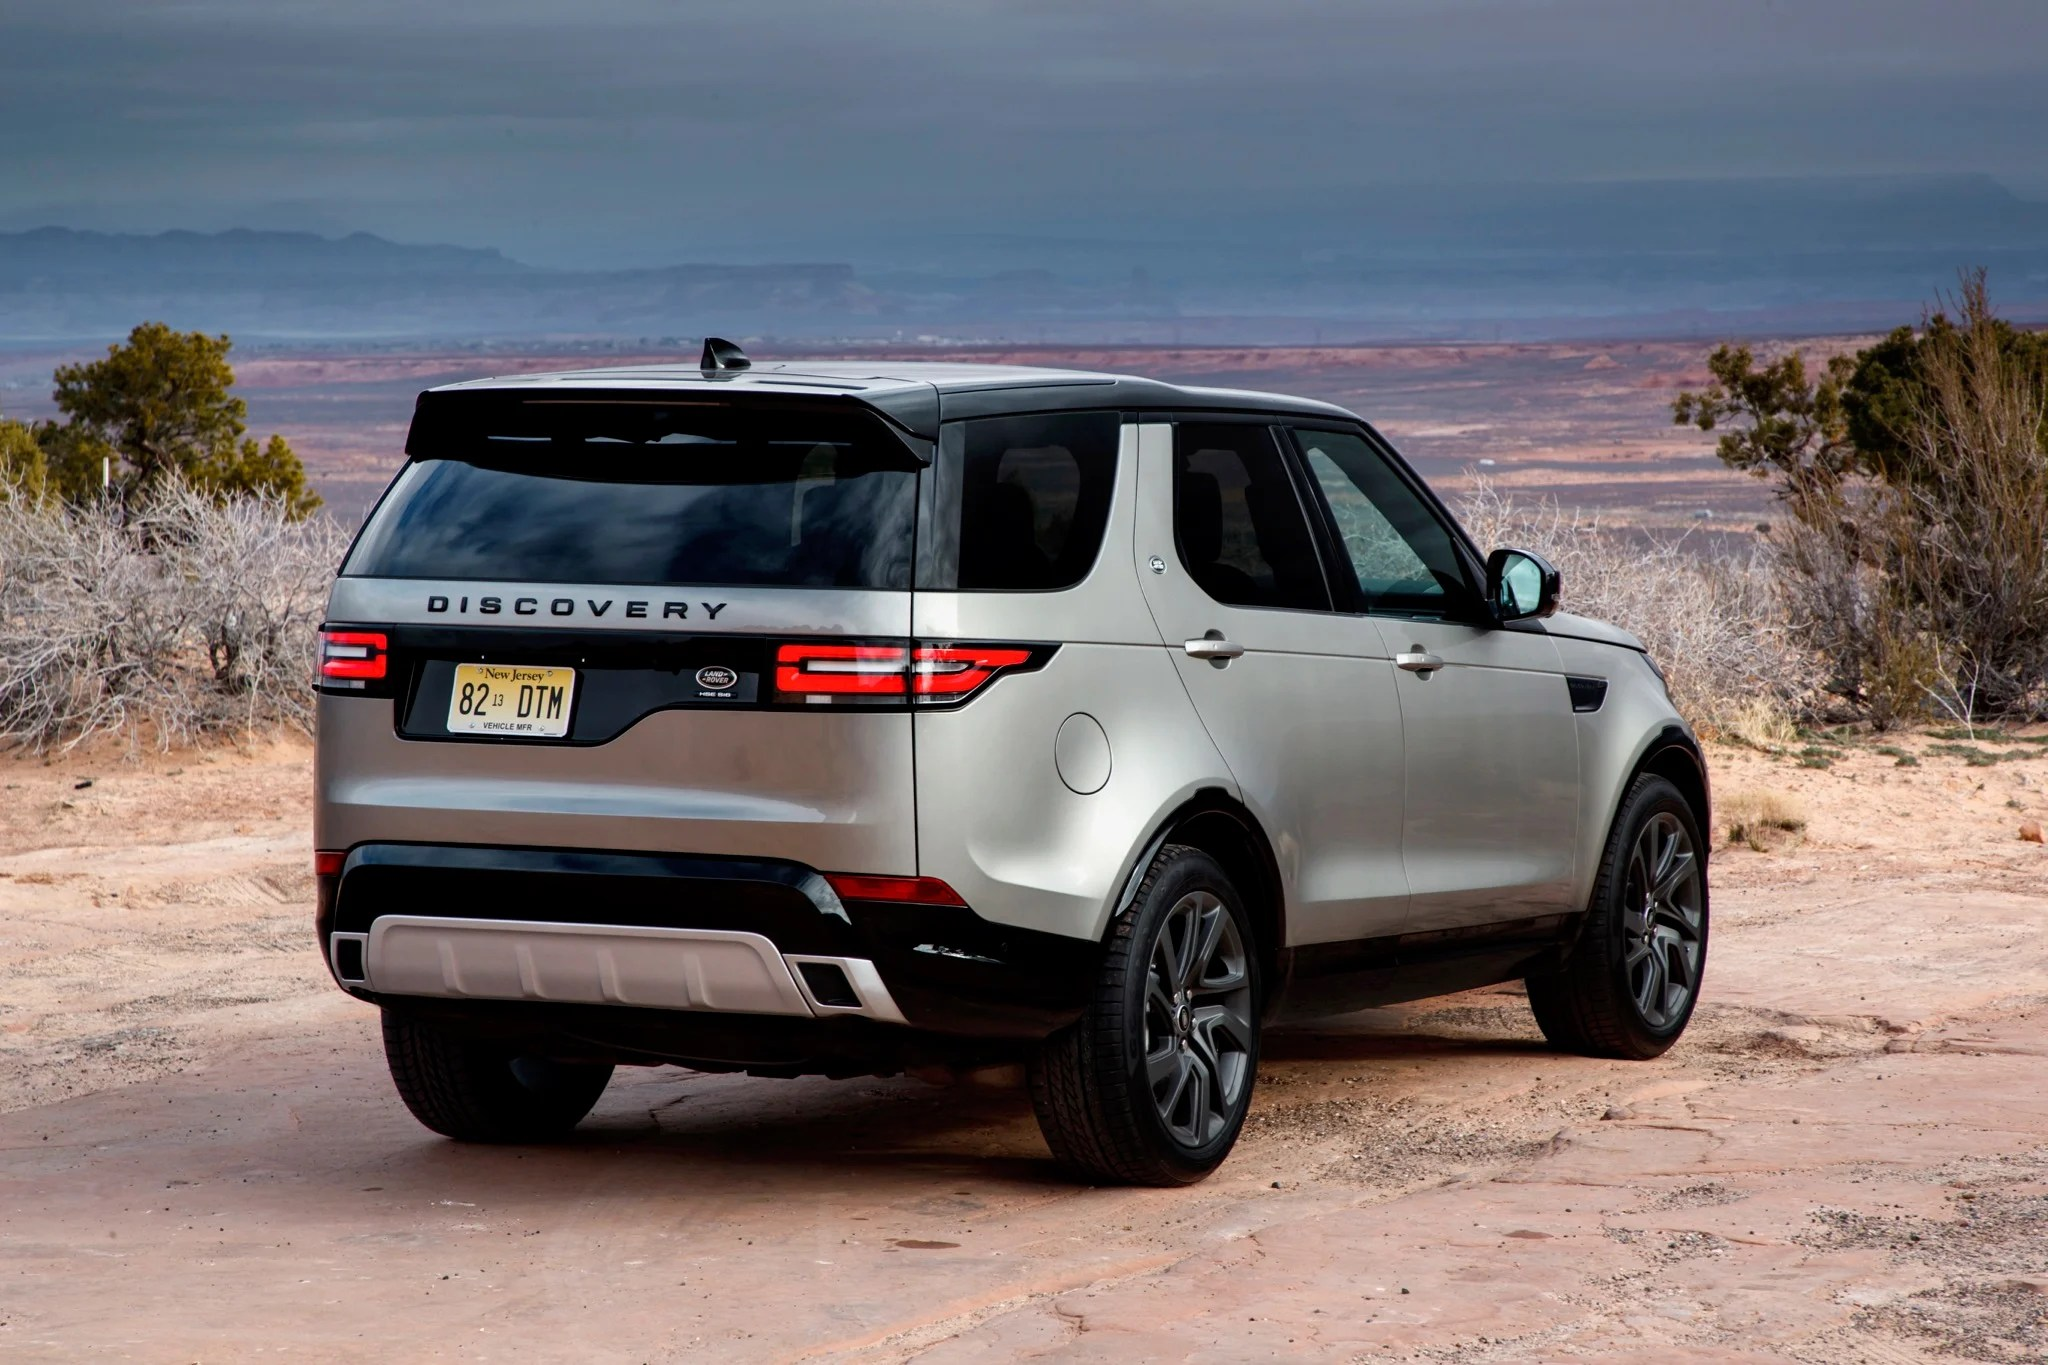 Range Rover Discovery 2017 land rover discovery review disco is